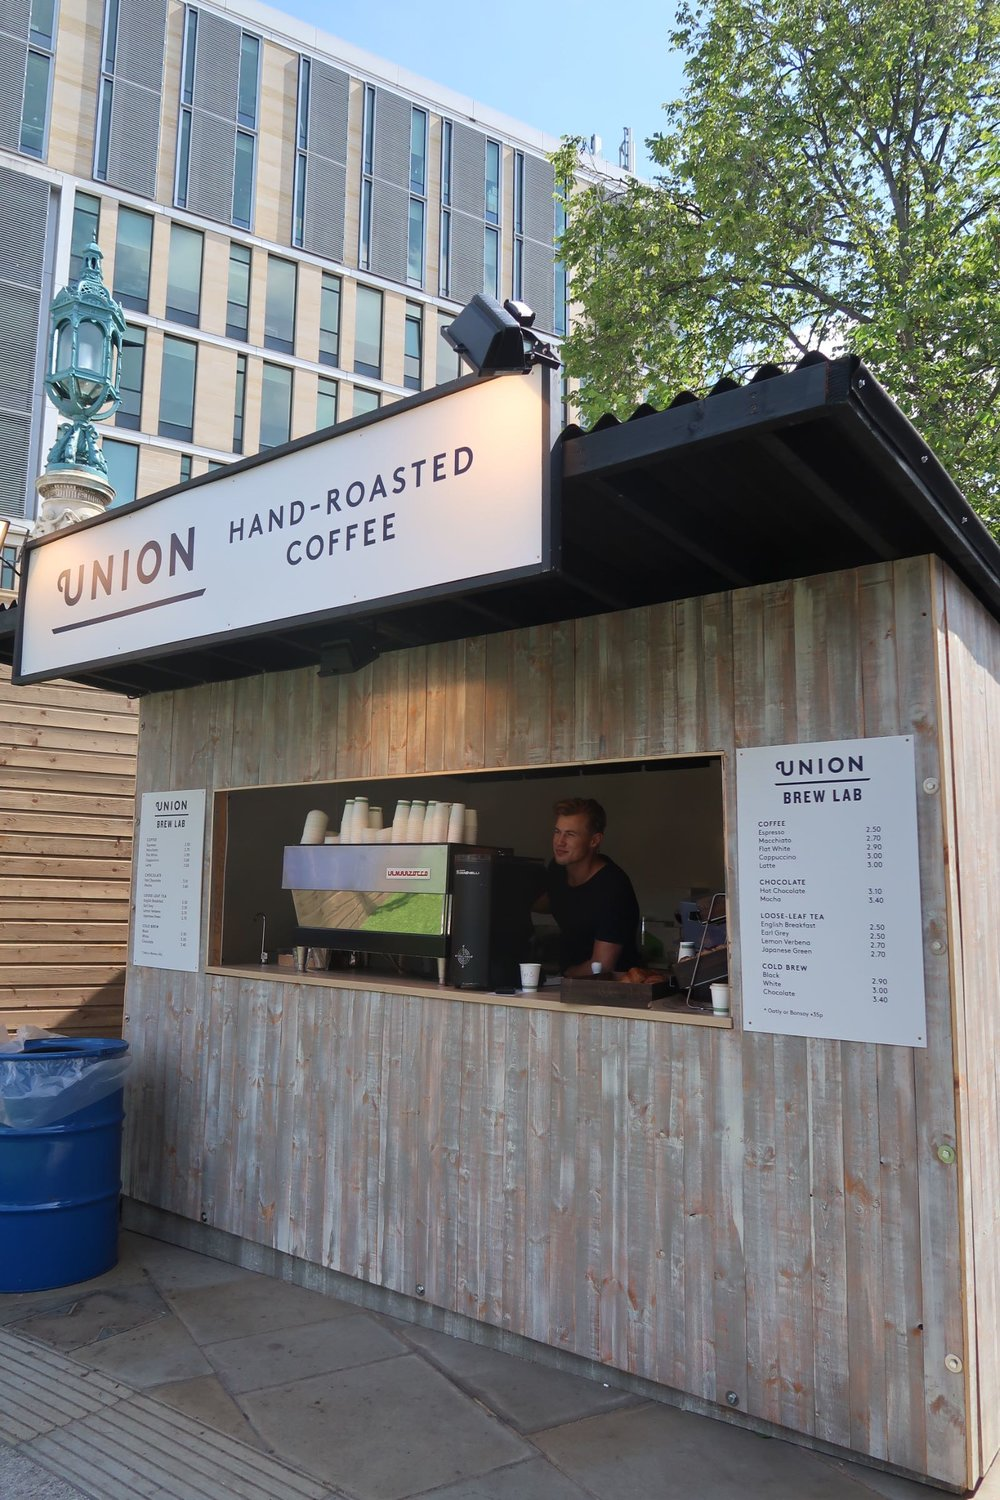 Coffee for festivals   Speciality coffee catering for your festival.